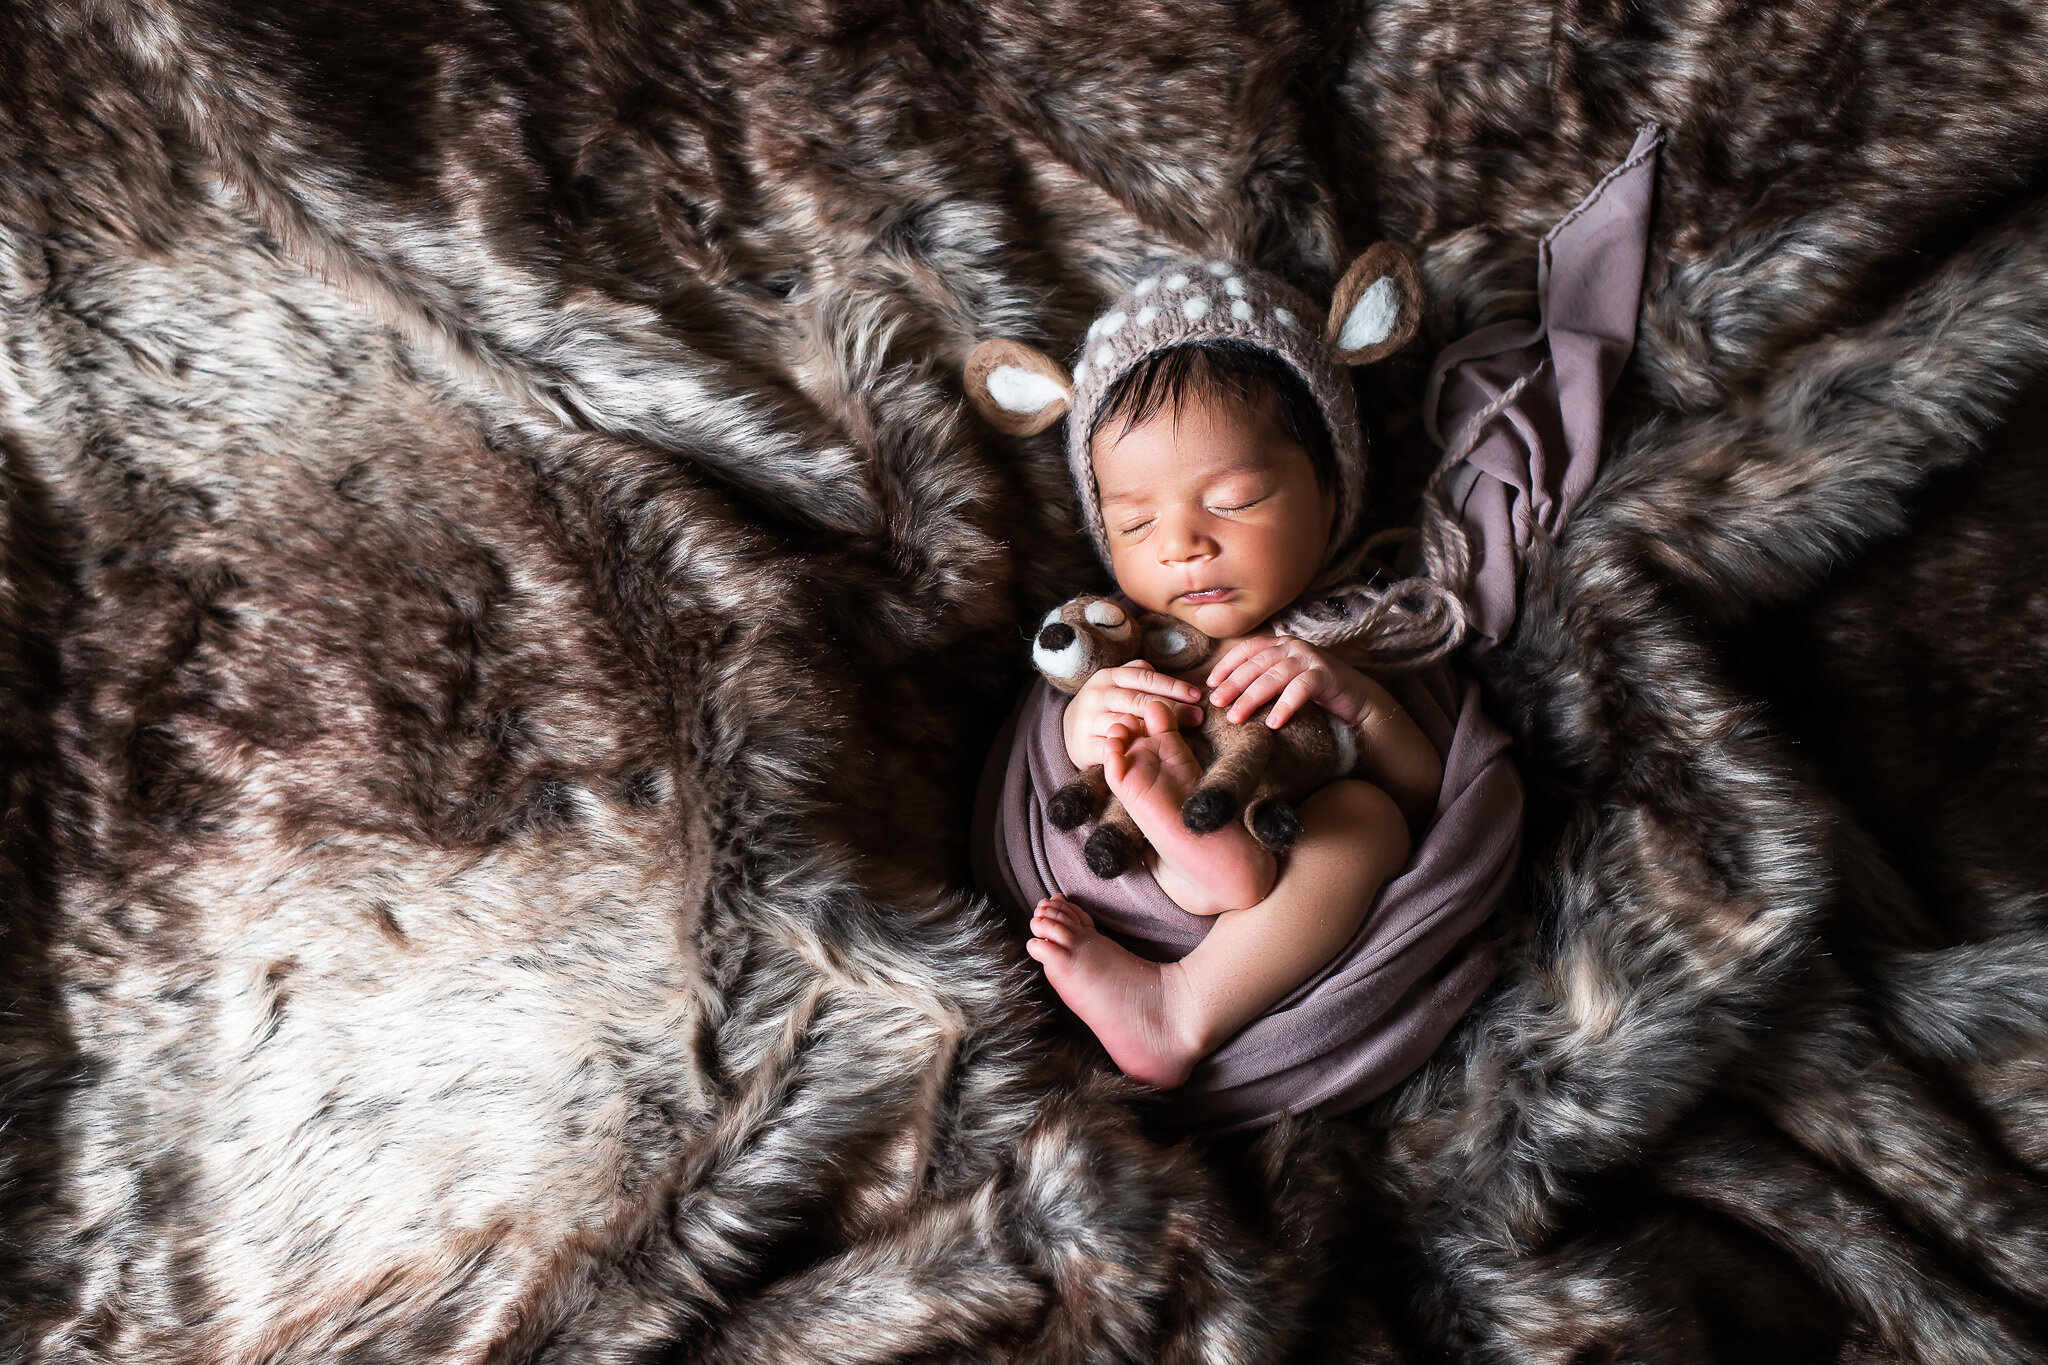 Baby Fawn, curled up in fur